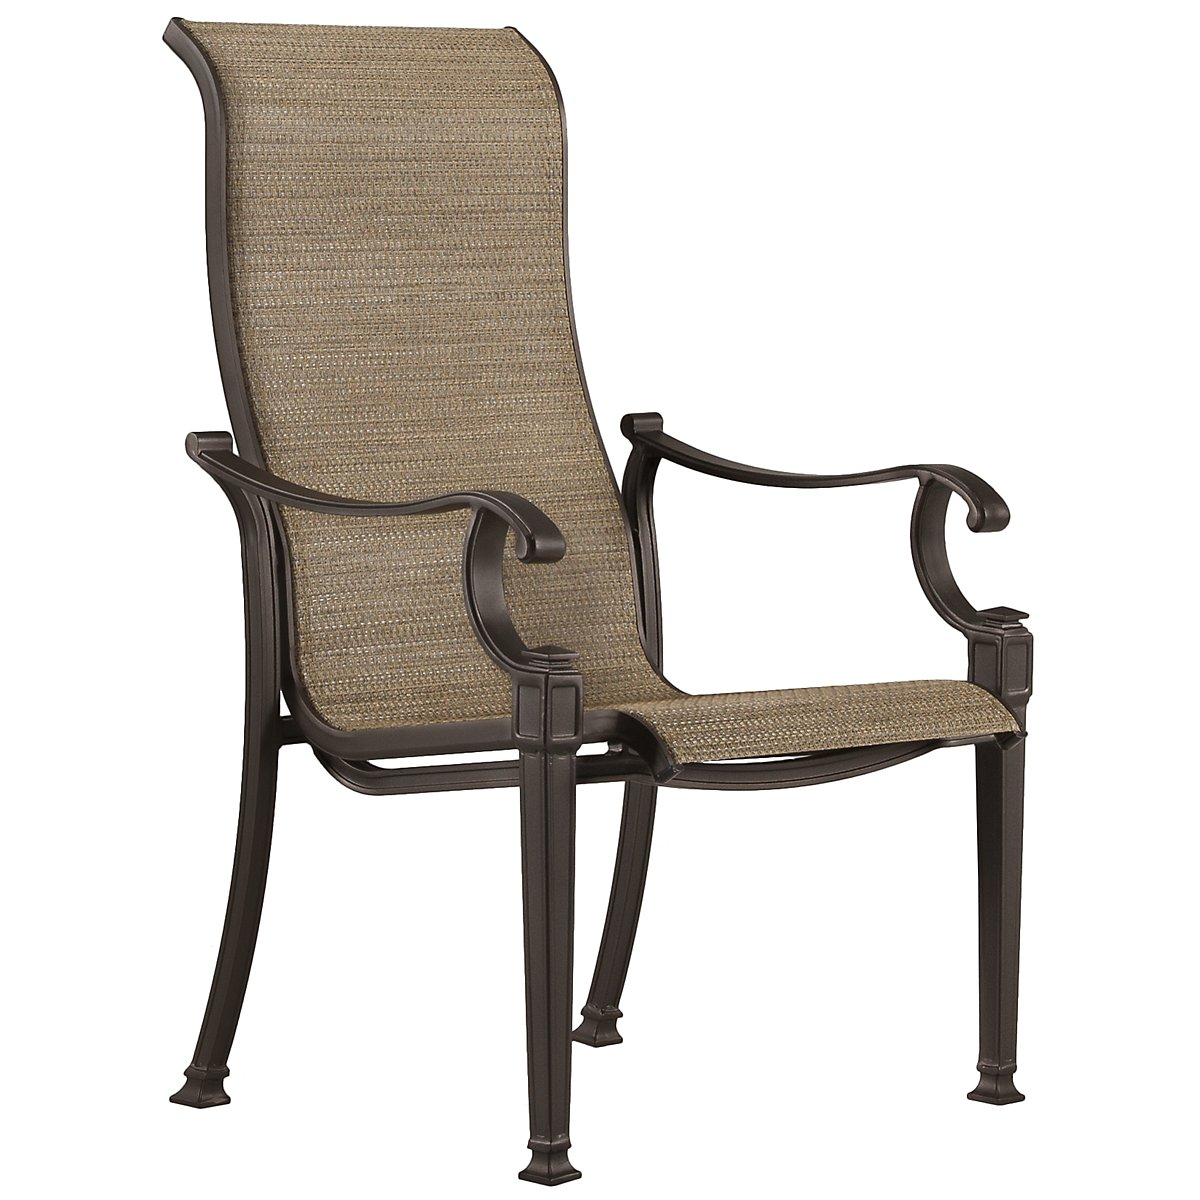 Primera Dark Tone Sling Chair